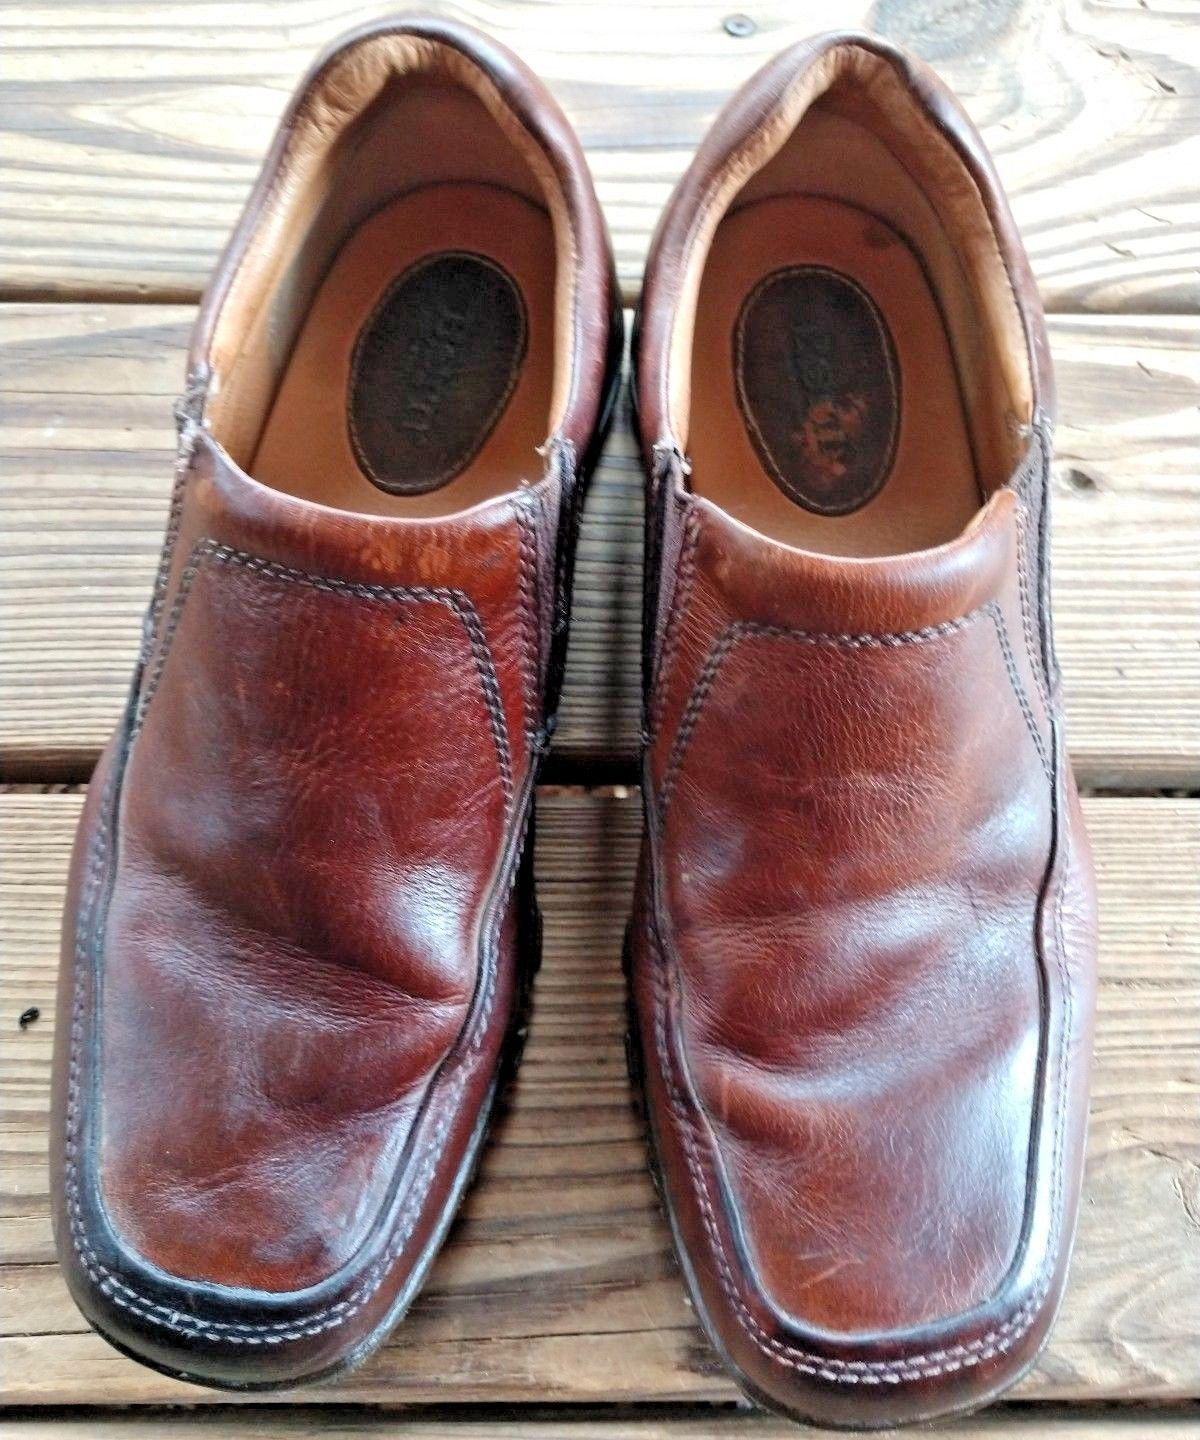 a0ccbfb601e9 Born Size 9.5 Brown Leather Casual Slip on and similar items